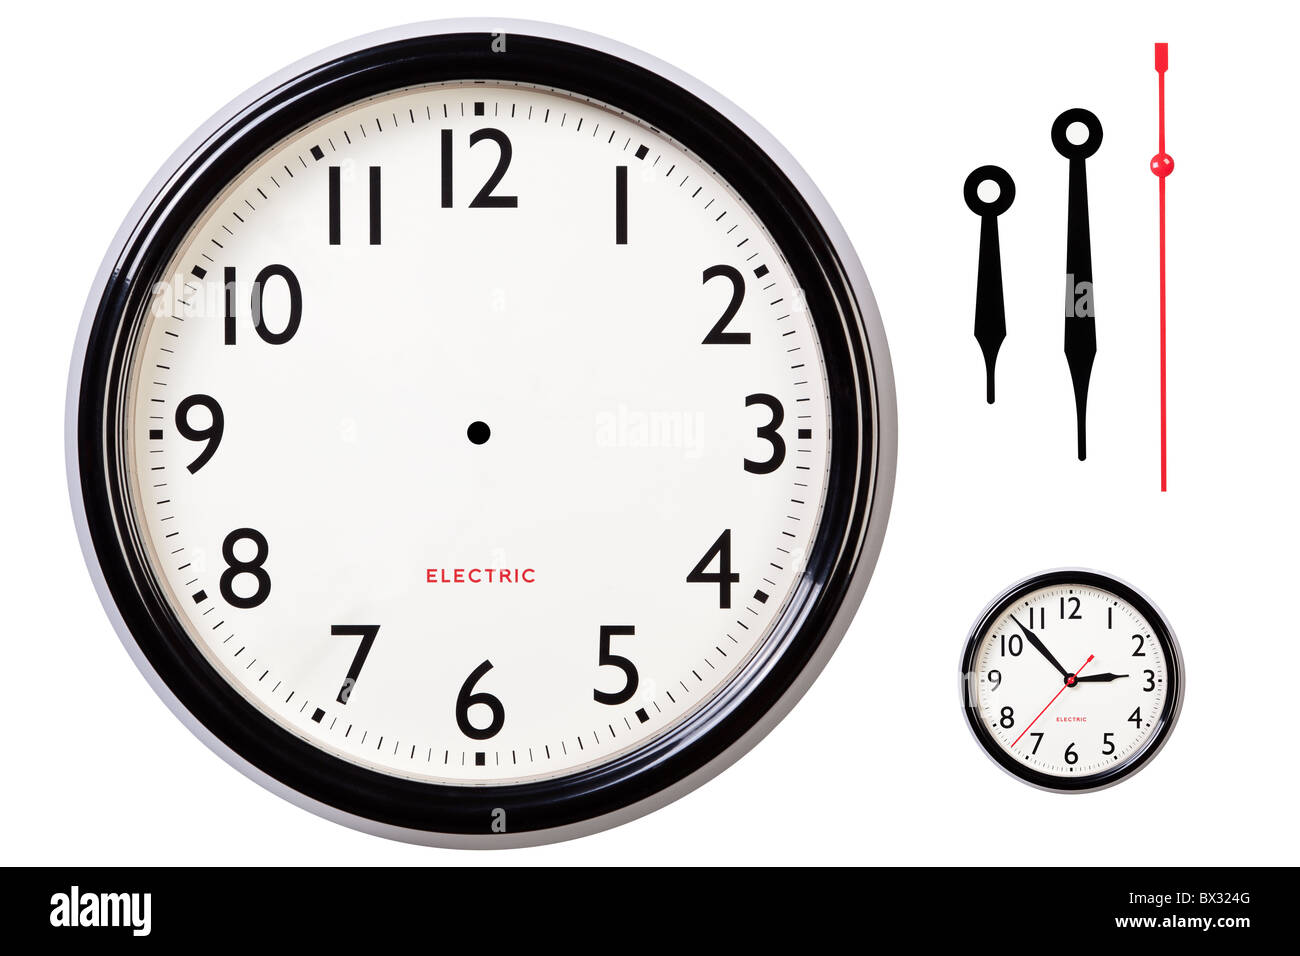 Photo of a blank electric clock face with arabic numerals plus hour, minute and second hands to make your own time. - Stock Image